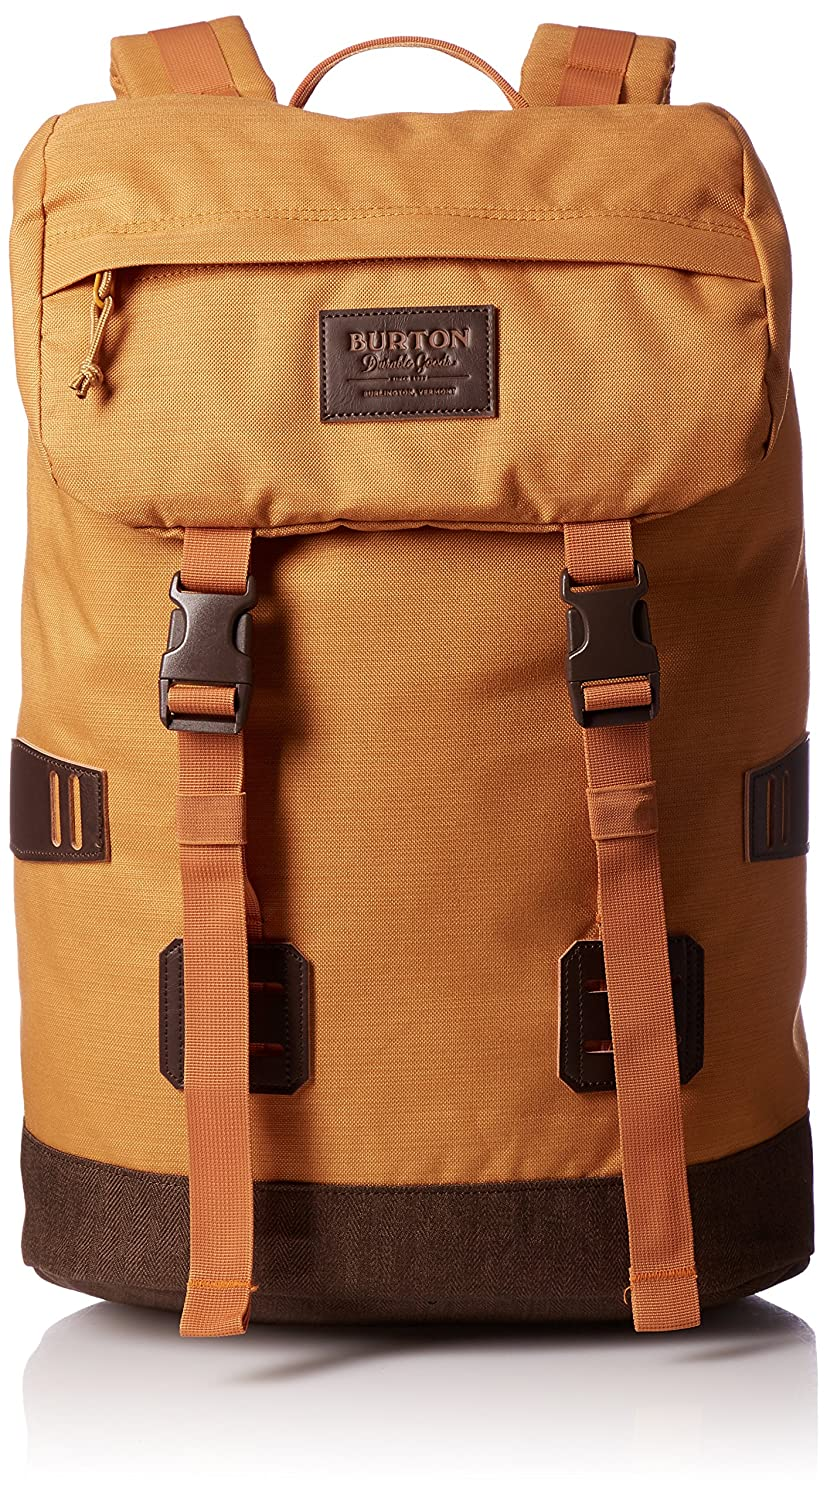 [バートン] BURTON リュック TINDER PACK [25L] B071RN7S4H GOLDEN OAK SLUB GOLDEN OAK SLUB